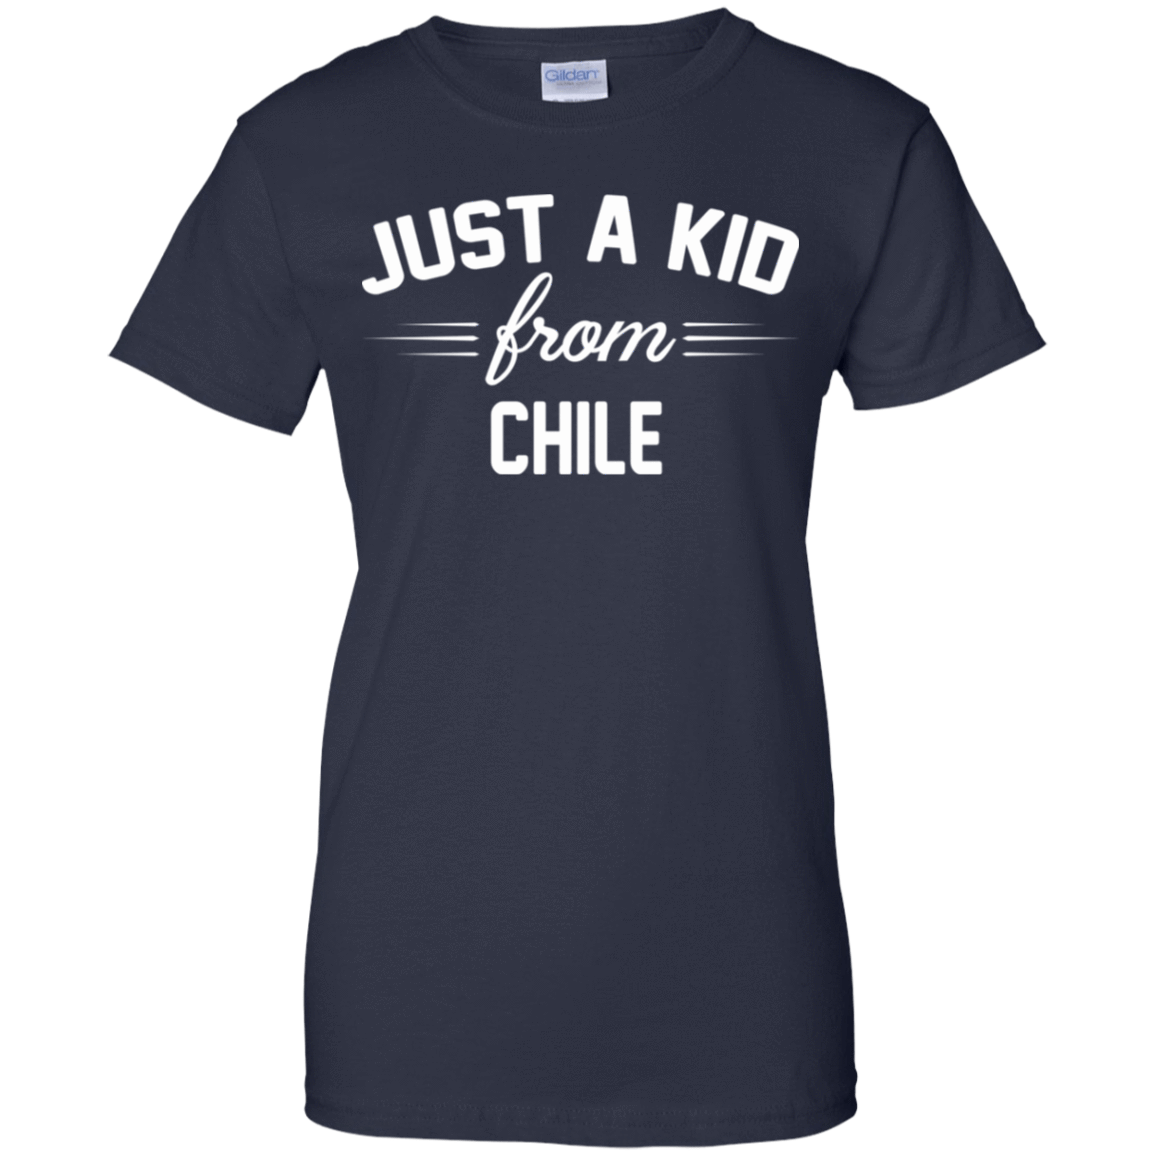 Just a Kid Store | Chile T-Shirts, Hoodie, Tank 939-9259-72092763-44765 - Tee Ript